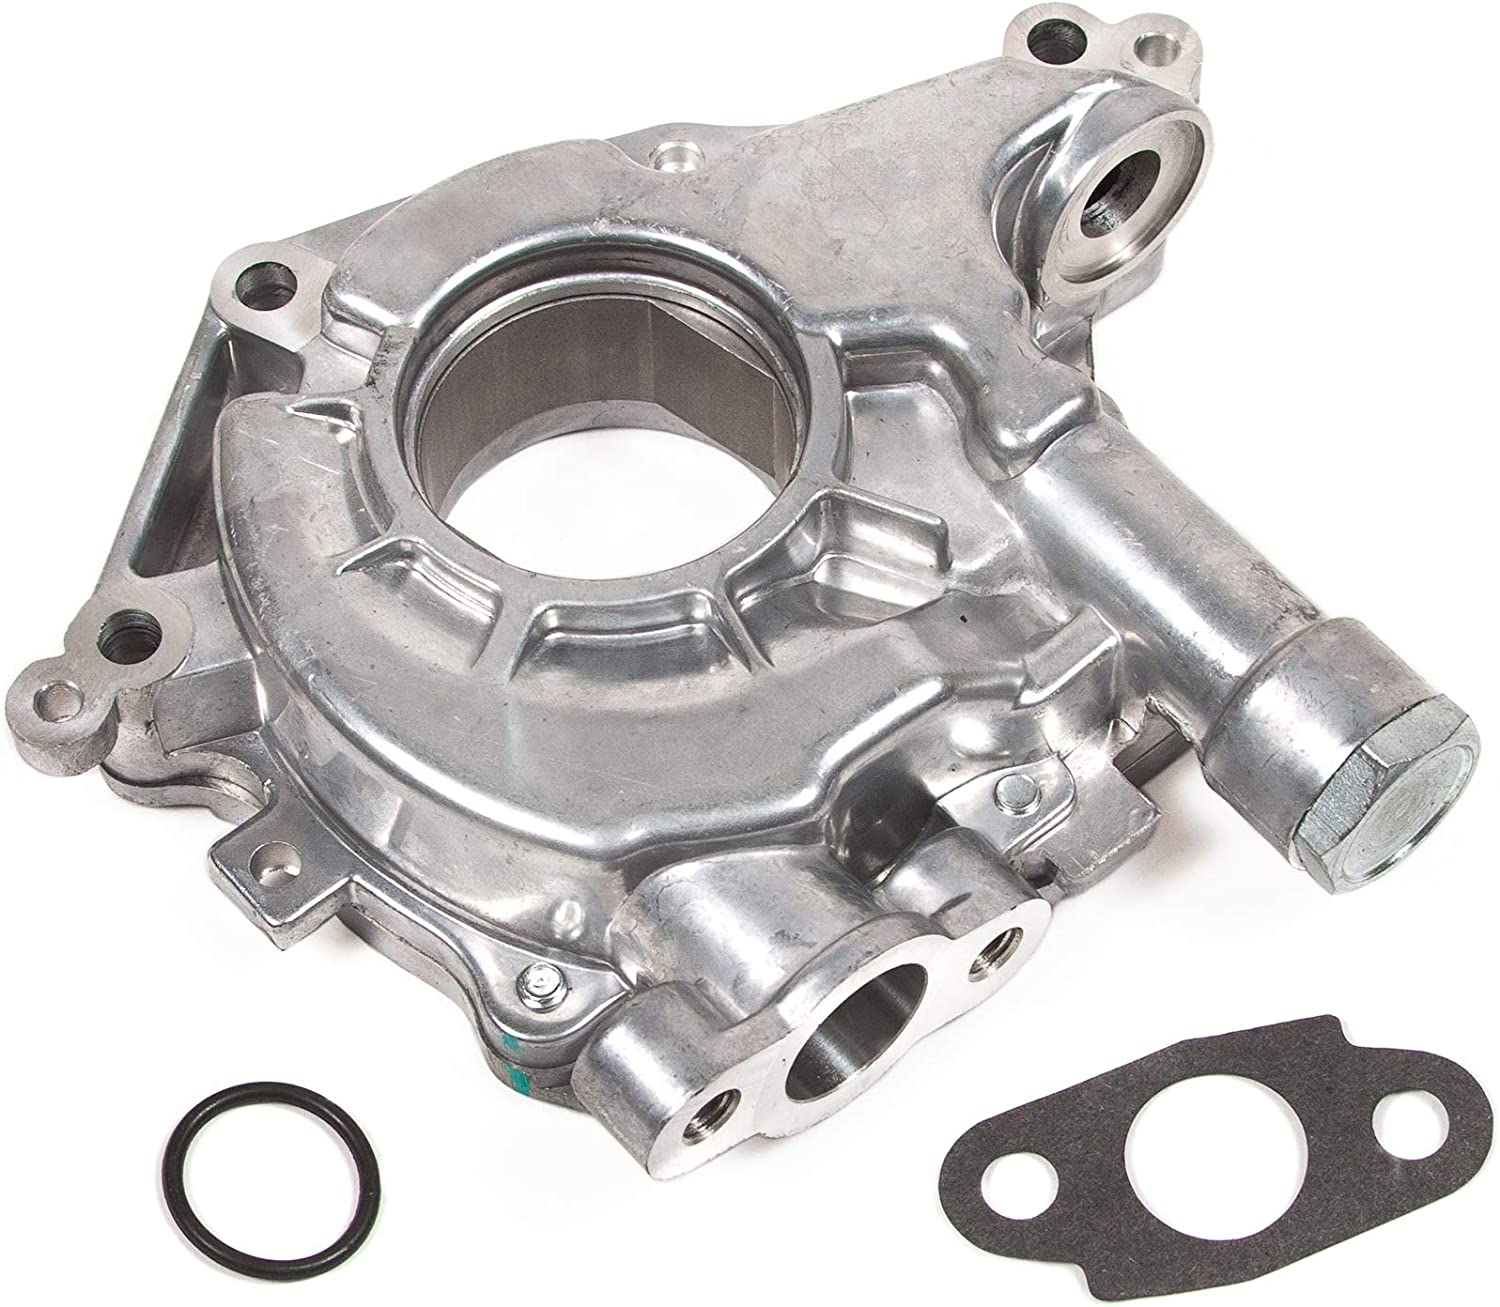 Engine Water Pump For 2006-2008 INFINITI M35 V6 3.5L